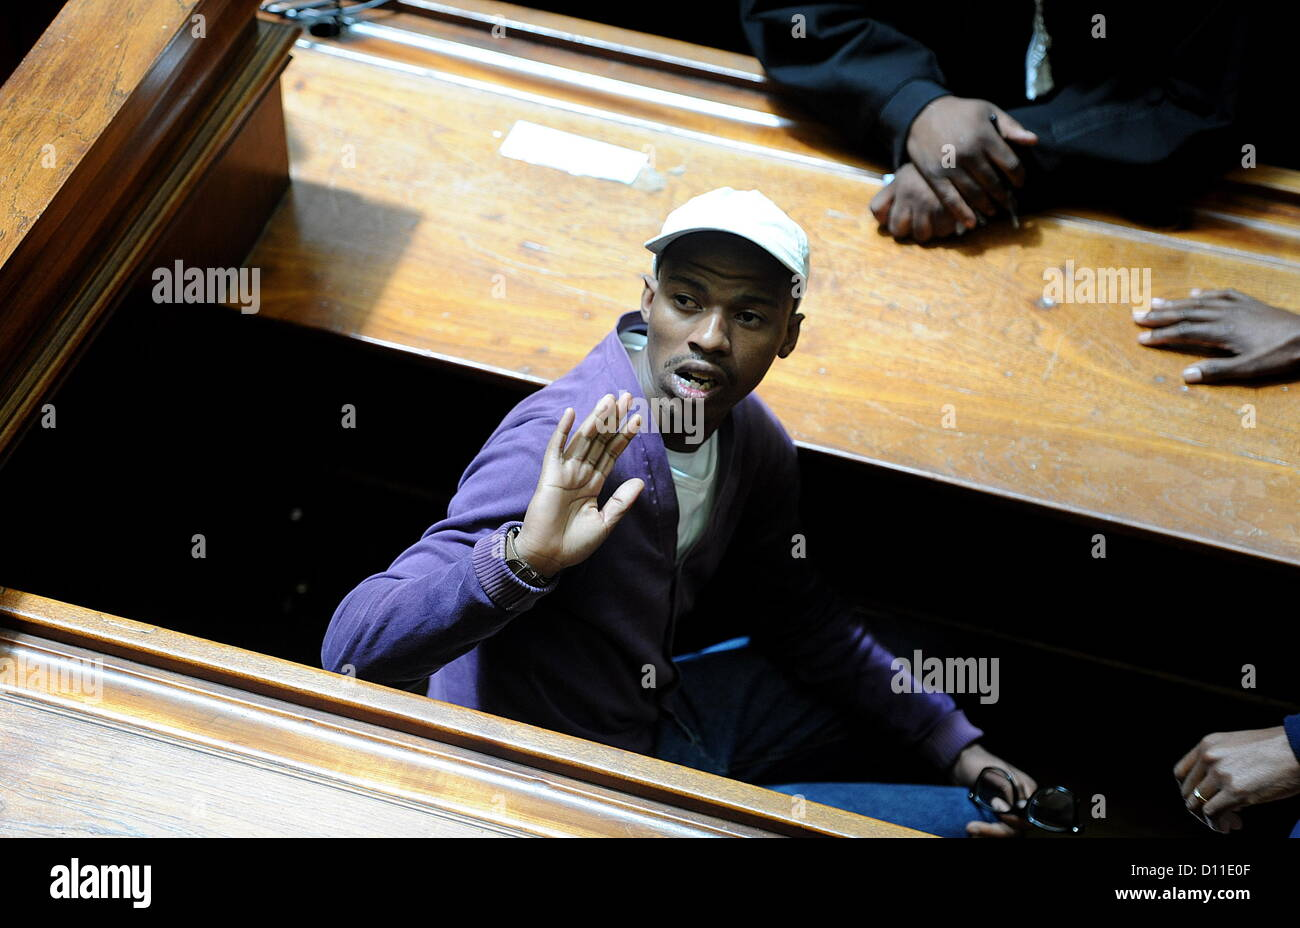 CAPE TOWN, SOUTH AFRICA:  (SOUTH AFRICA OUT) Xolile Mngeni in the Cape Town High Court on December 5, 2012  in Cape - Stock Image